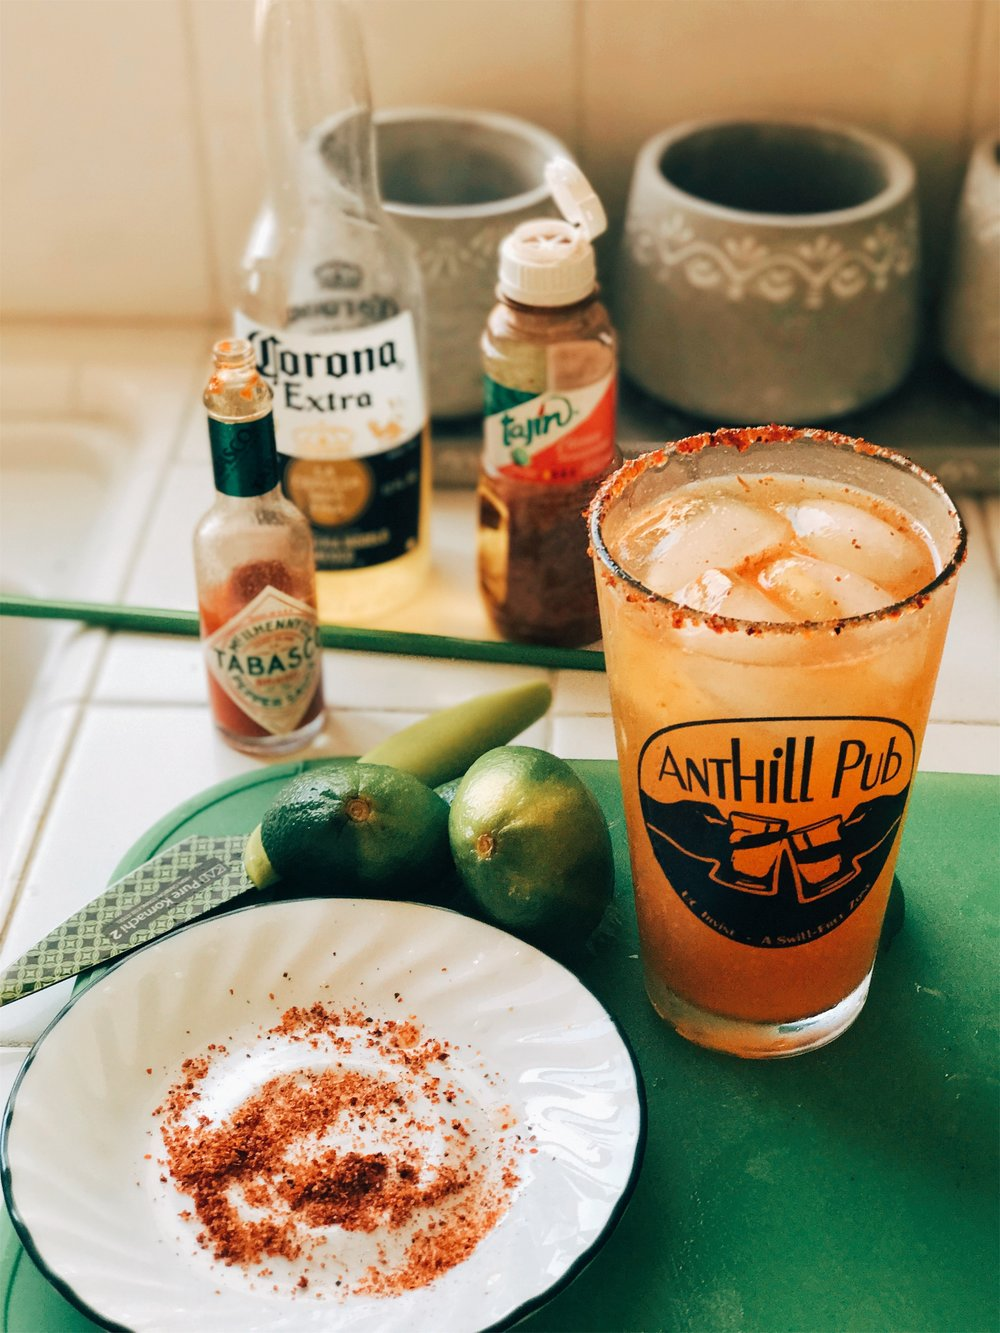 Michelada- A Spicy Farewell - Ingredients: Tajin, kosher salt, 2 limes, 2tsp hot sauce, 1tsp Worcestershire sauce, 1 bottle Corona.Instructions: 1. Pour Tajin/salt in shallow dish in an even layer. Rub a pint with lime, then dip glass into dish. 2. Add lime juice, hot sauce, Worcestershire sauce to pint glass. Add a pinch of salt, fill glass with ice, and top with beer. Stir gently.